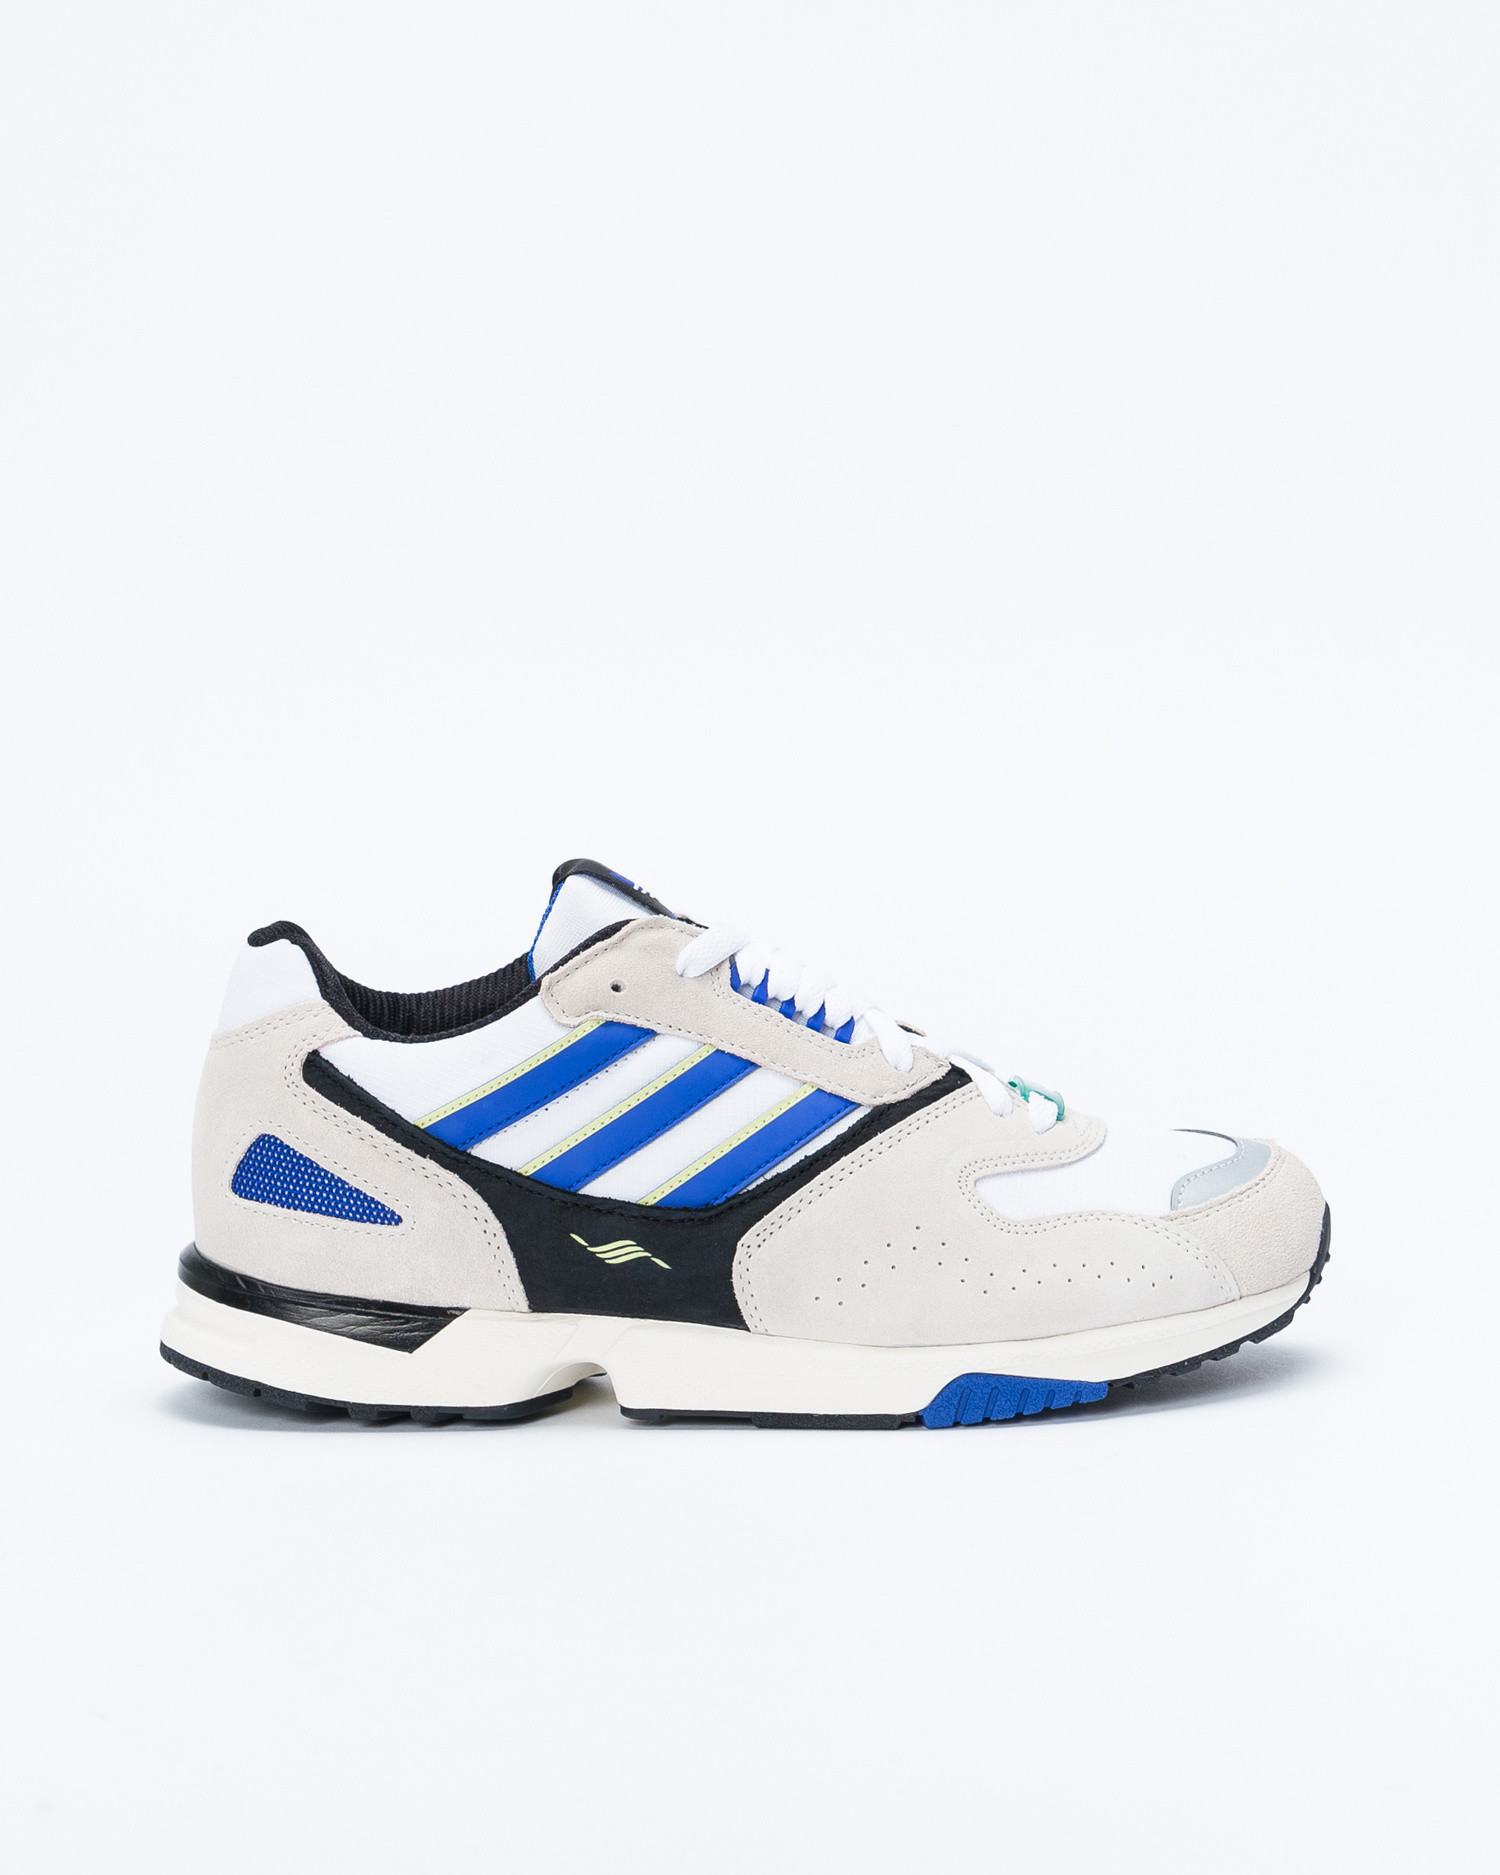 adidas x Alltimers ZX4000 Clear Brown/Core Black/Collegiate Royal